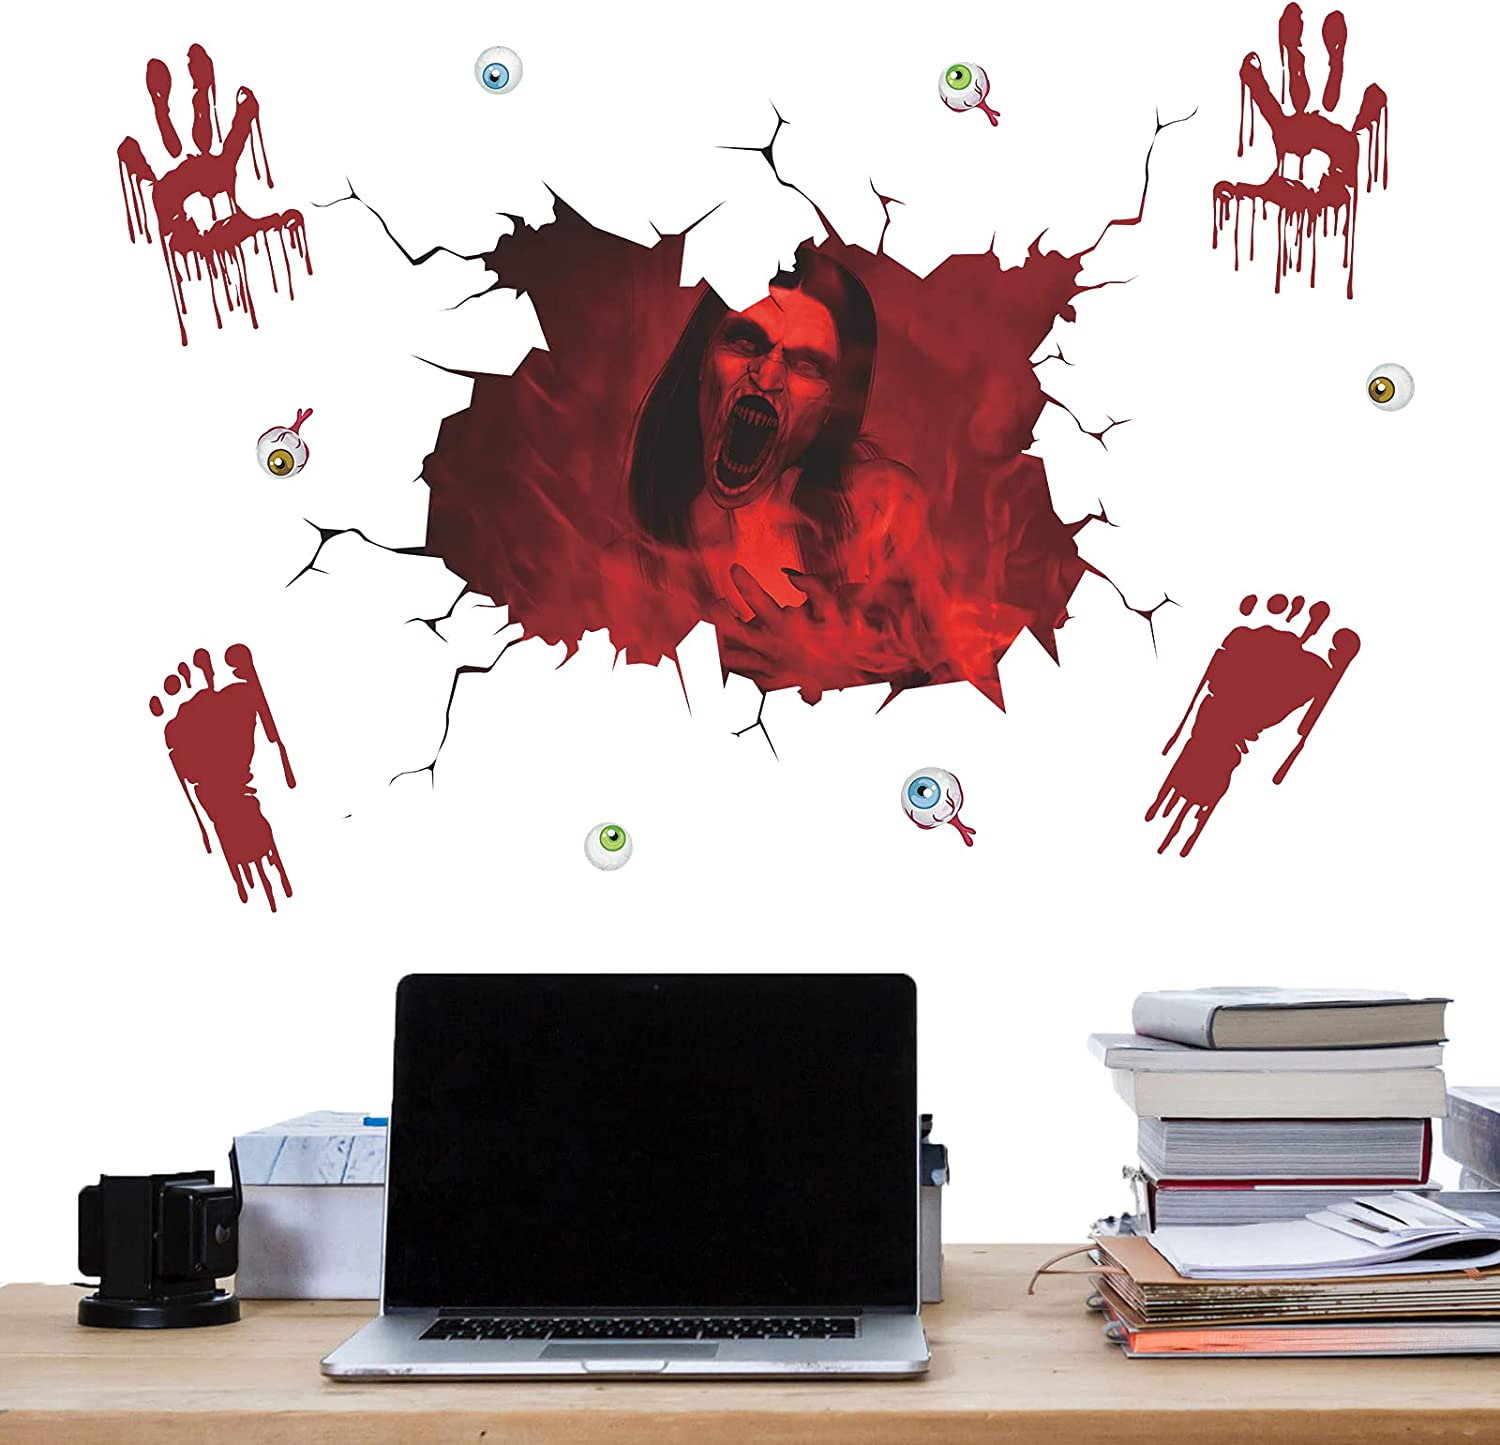 100% quality warranty Atcarmor Halloween Wall Sticker Removable Sale SALE% OFF Decals